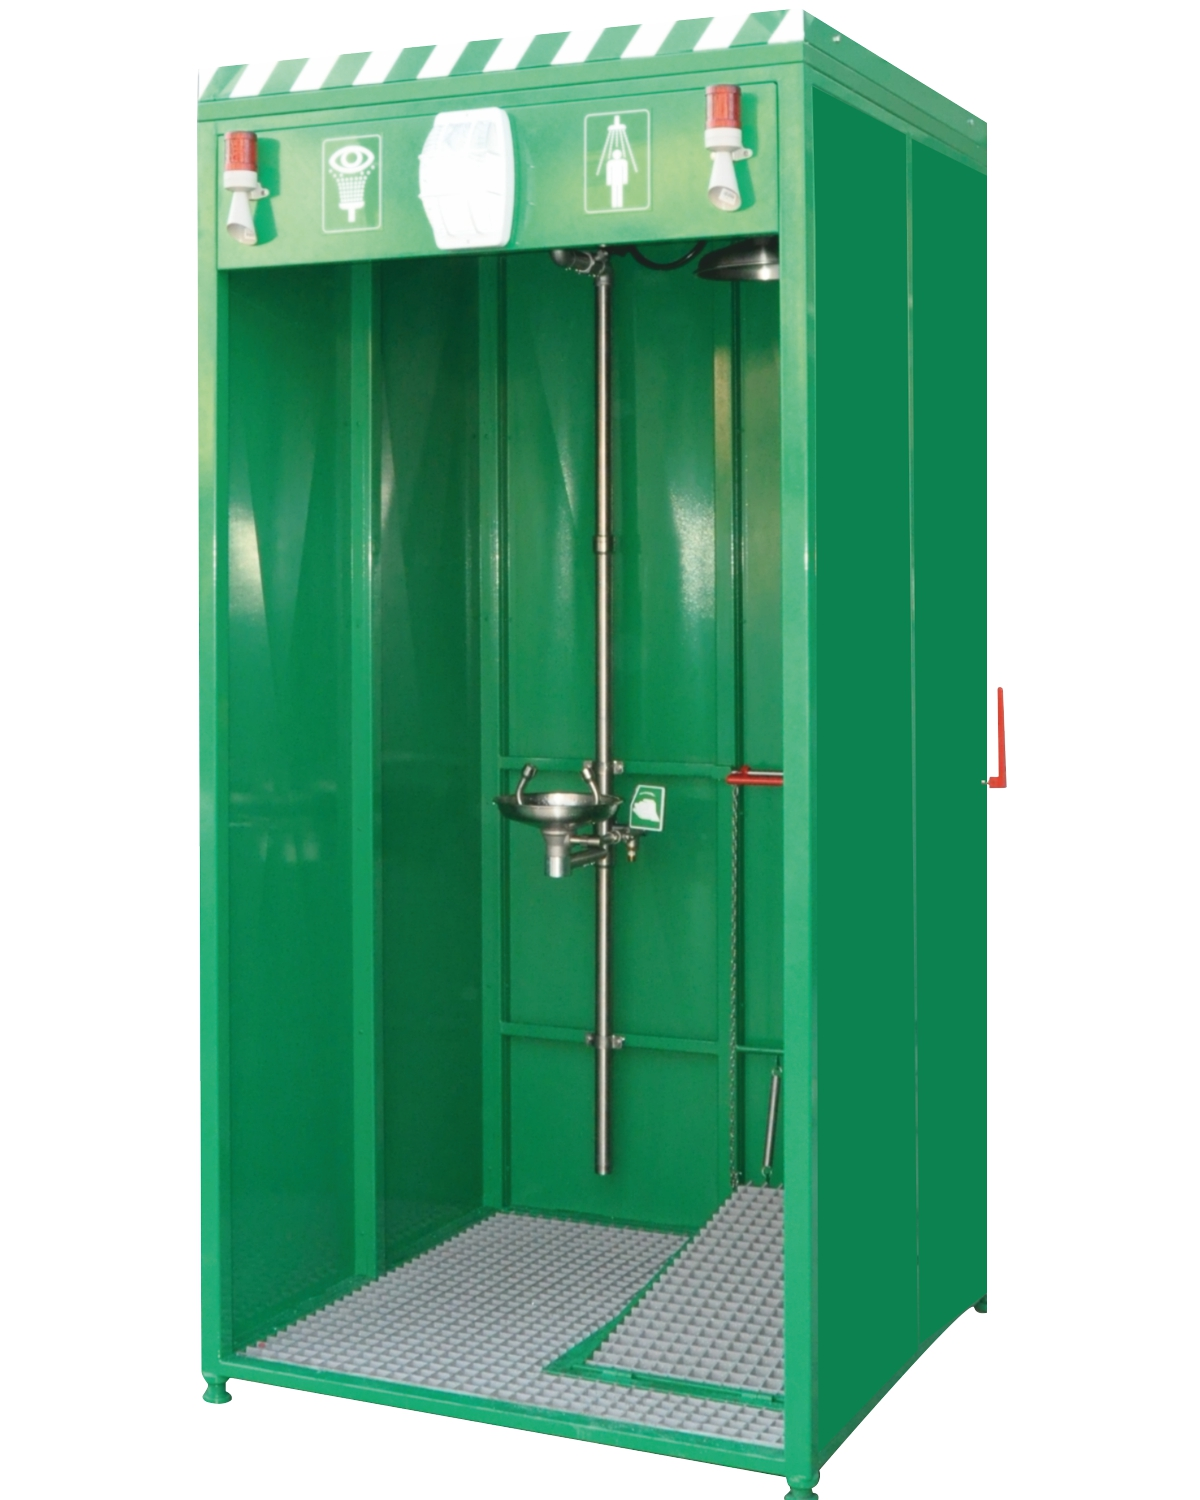 Safety Shower Heated : Cubicle cabin mounted showers istec type ccm İşçi